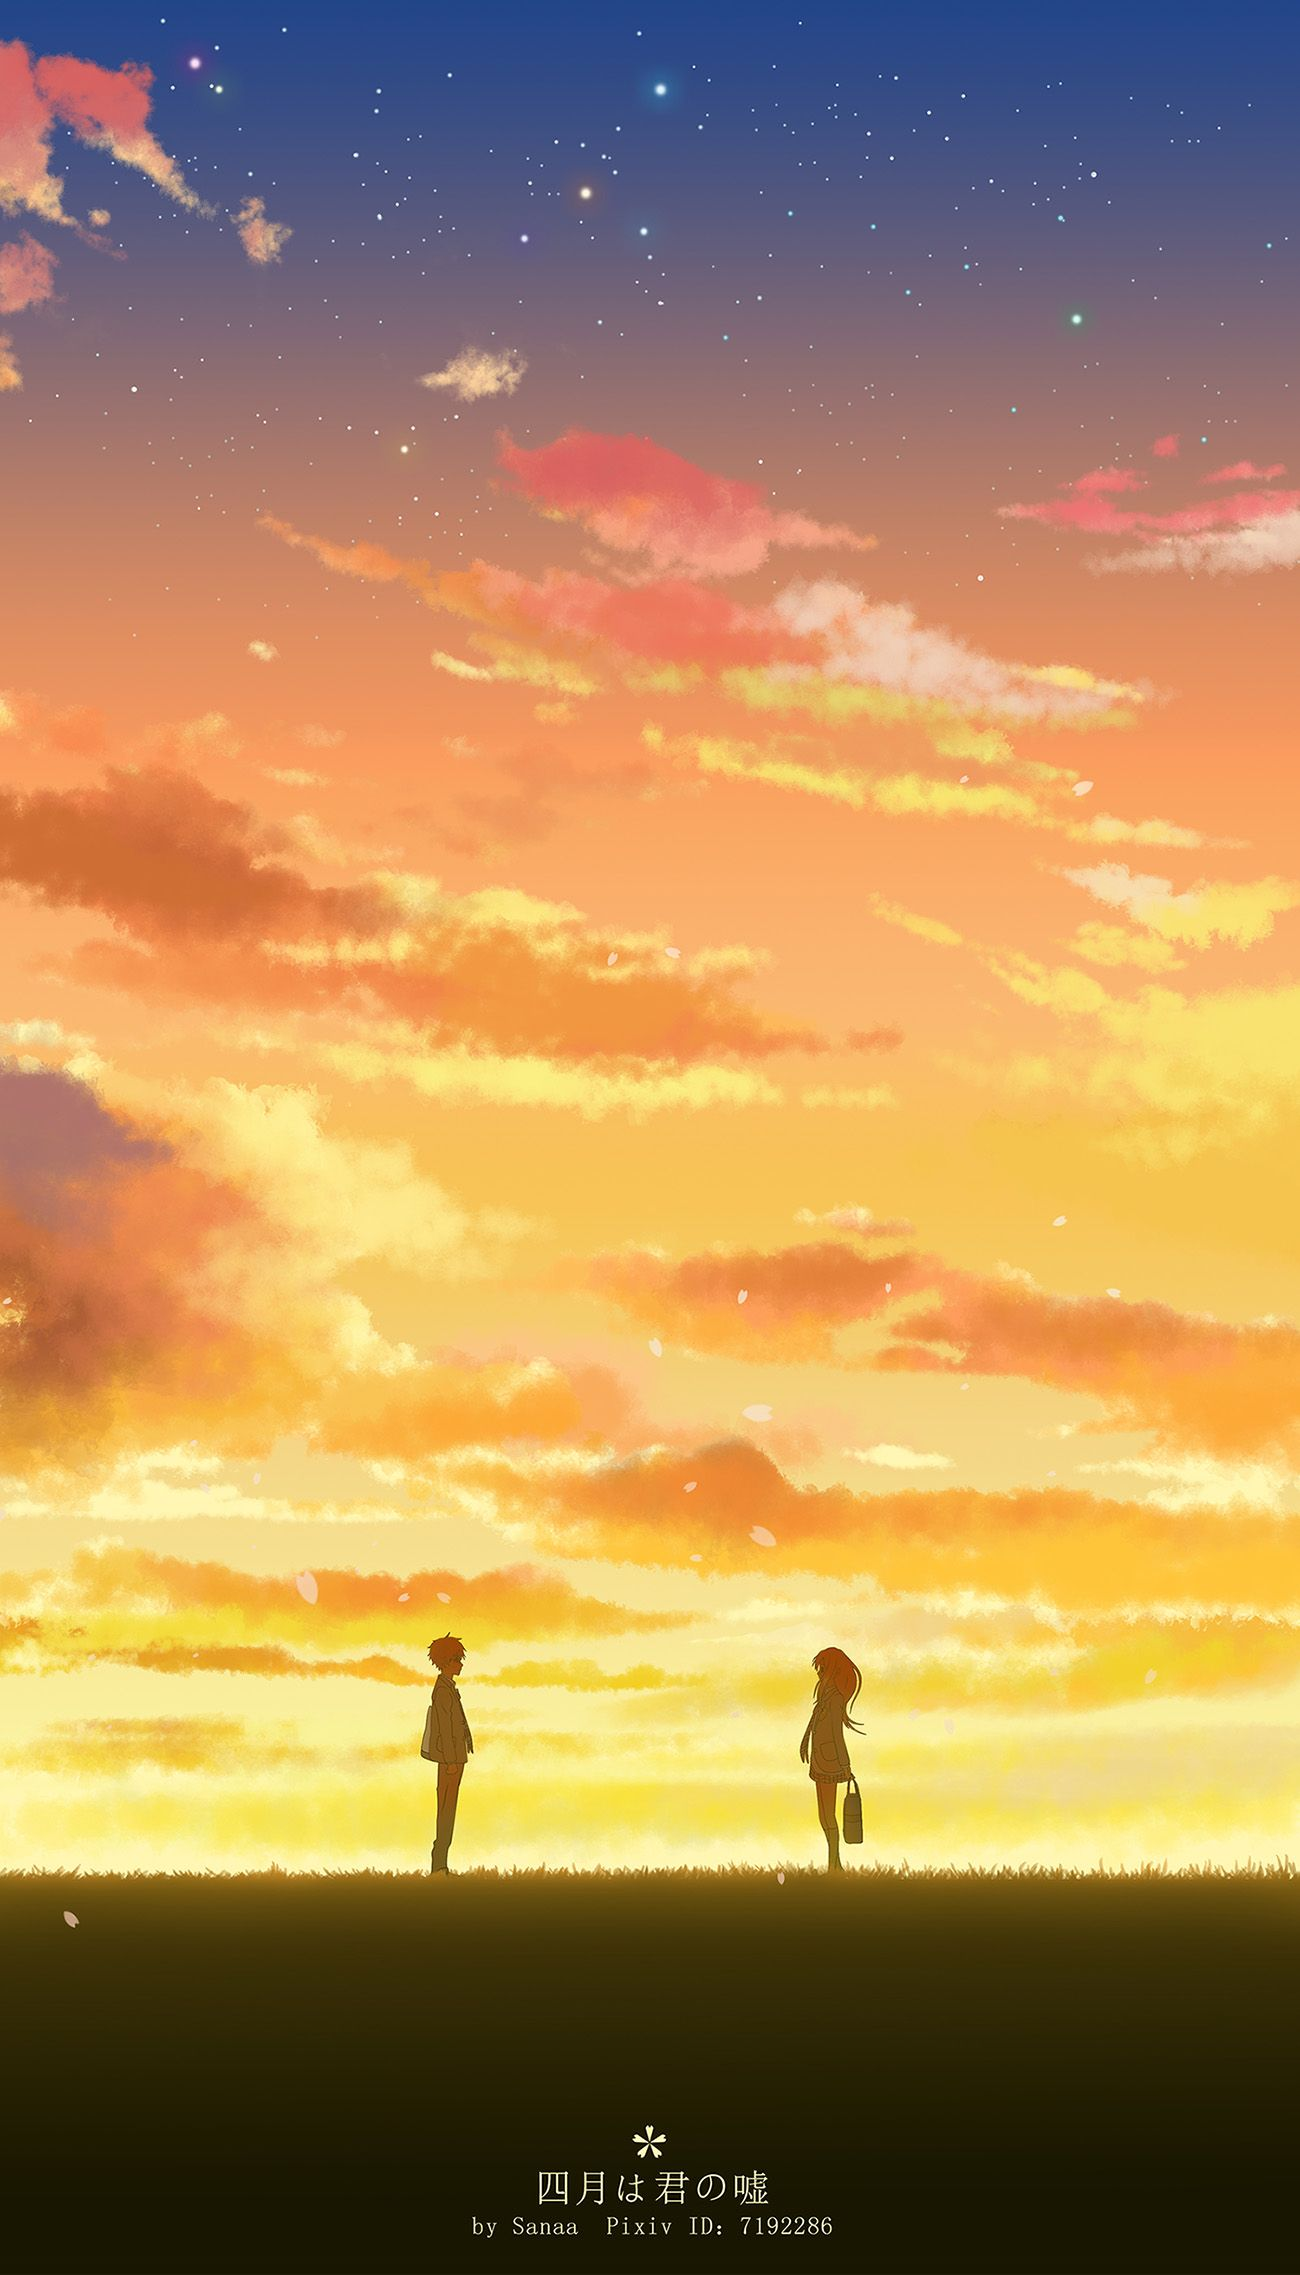 i just finished Your Lie in April...i've never cried this